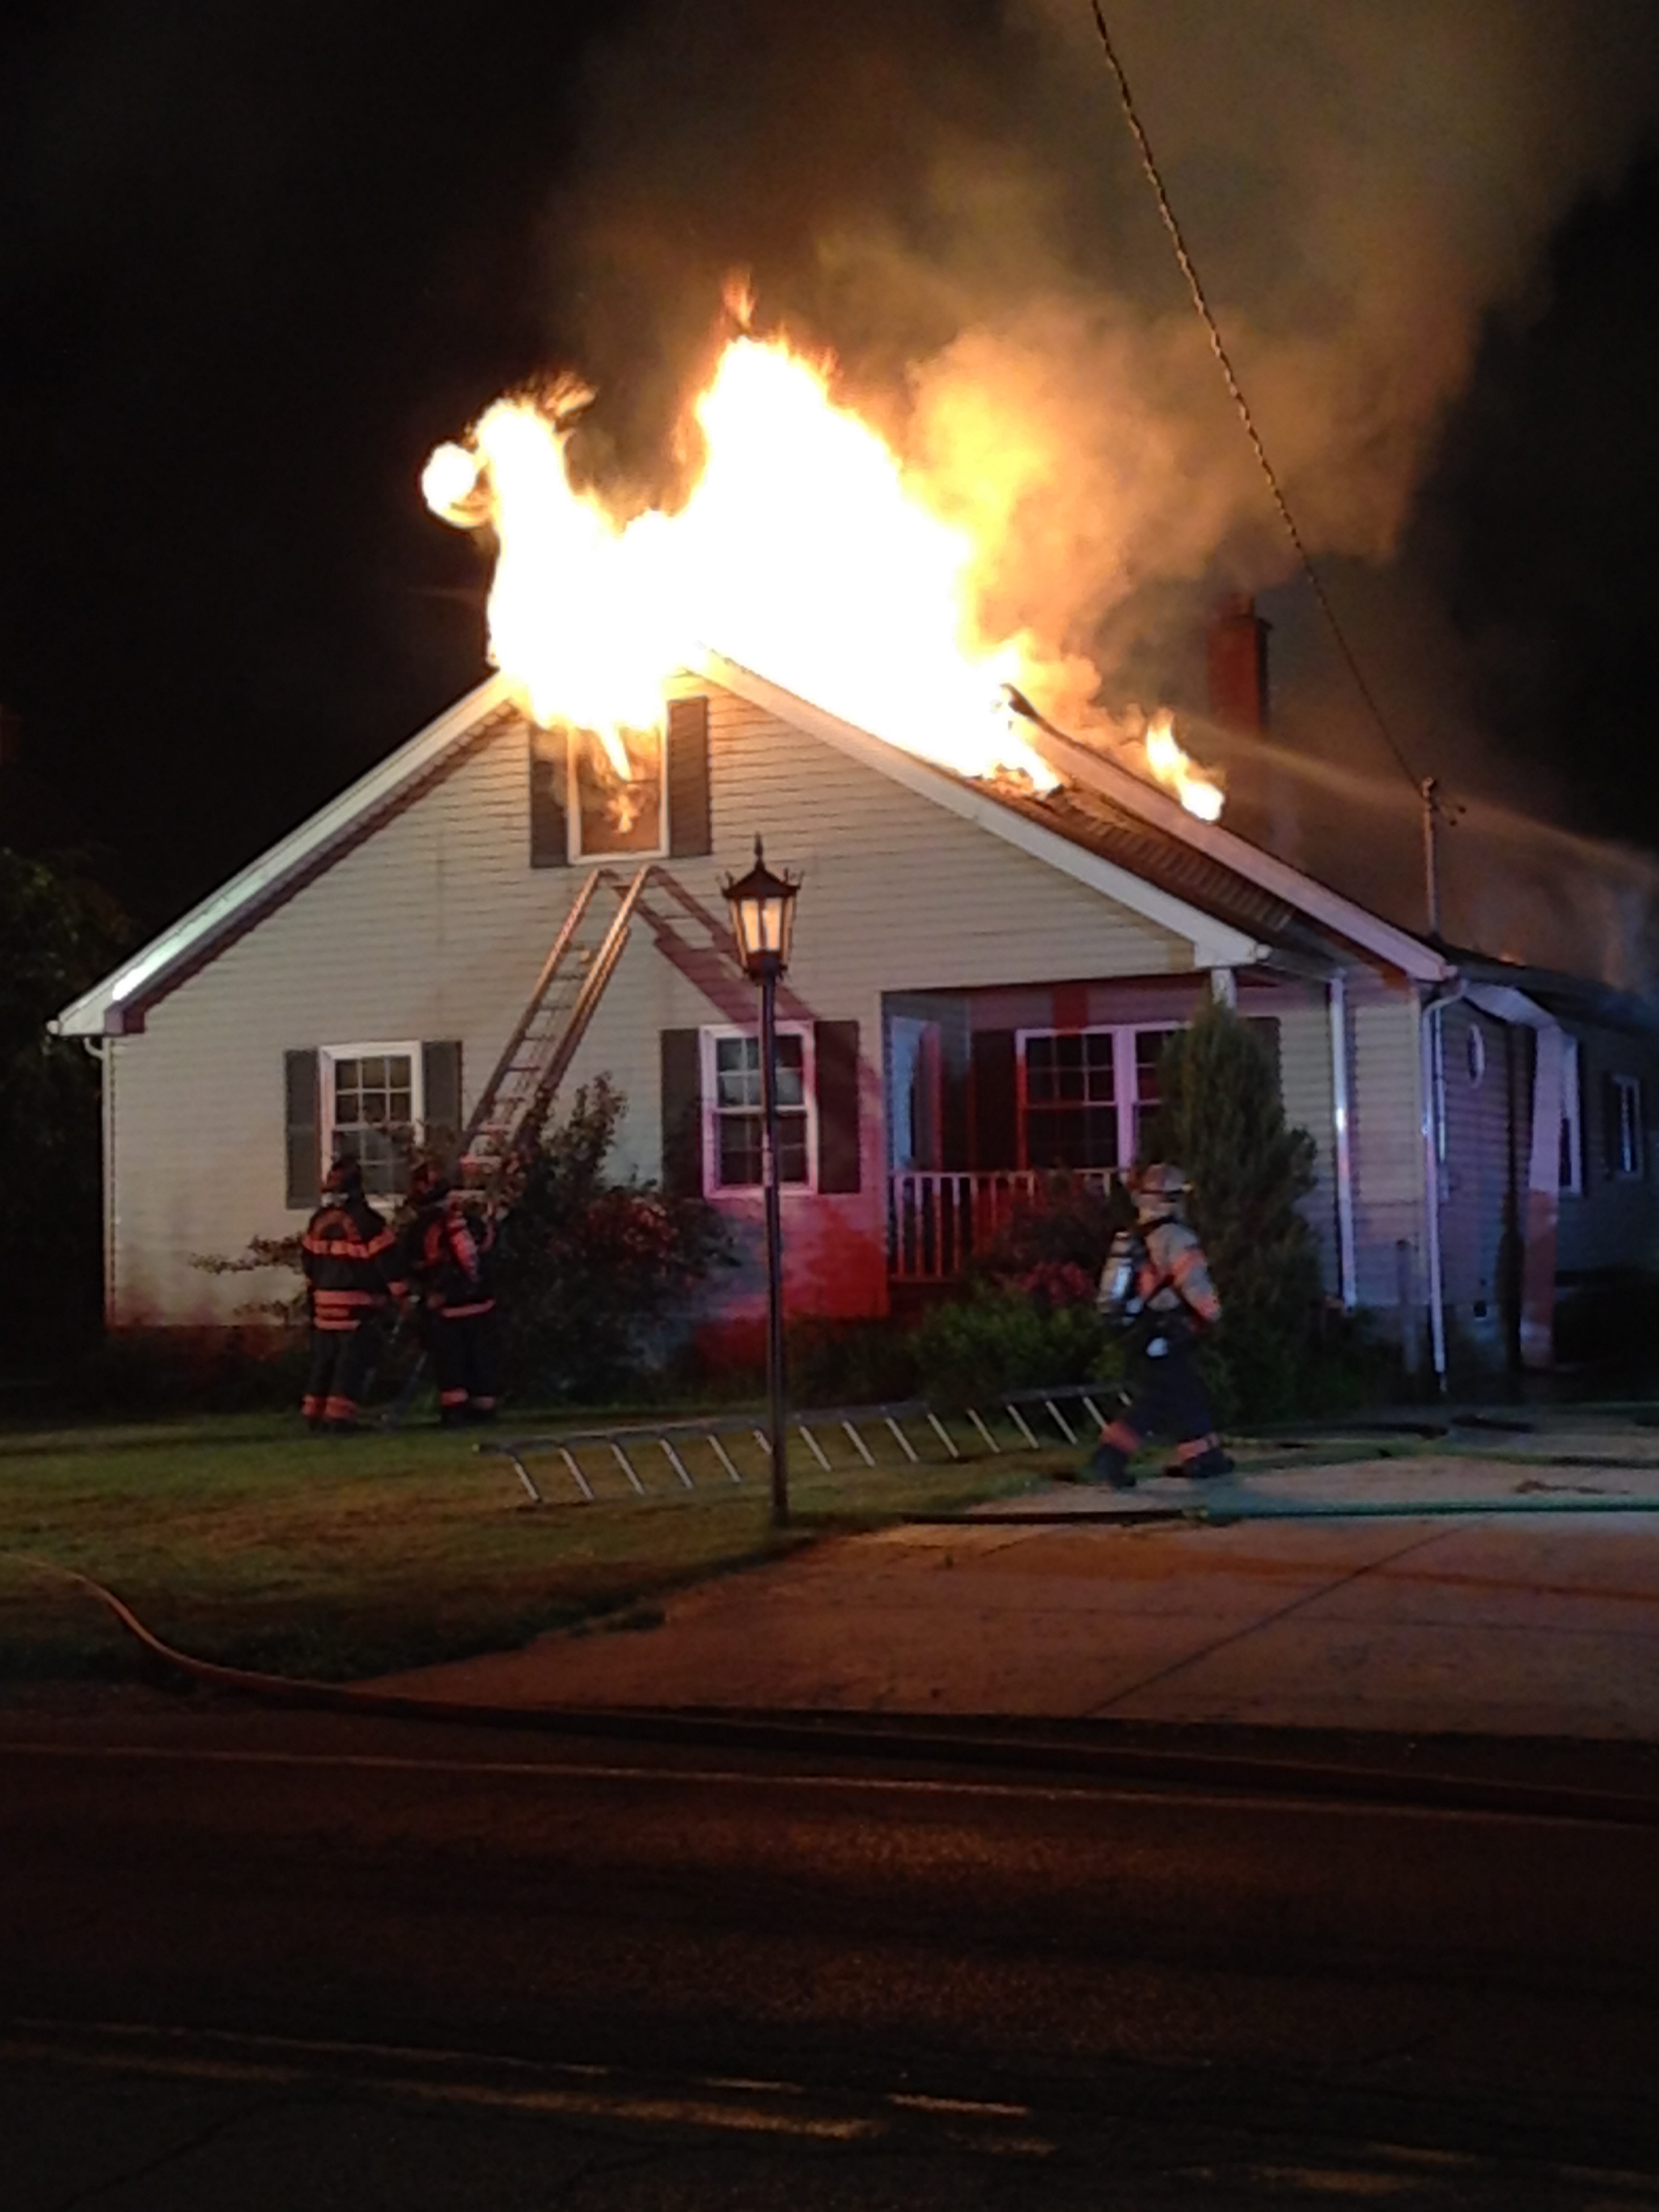 Snyder firefighters flight flames at the front of the house at 400 Park Club Lane Sunday, June 7, 2015. All occupants escaped safely when the fire broke out about 4 a.m. The Eggertsville Hose Company assisted. (John Neville/Buffalo News)